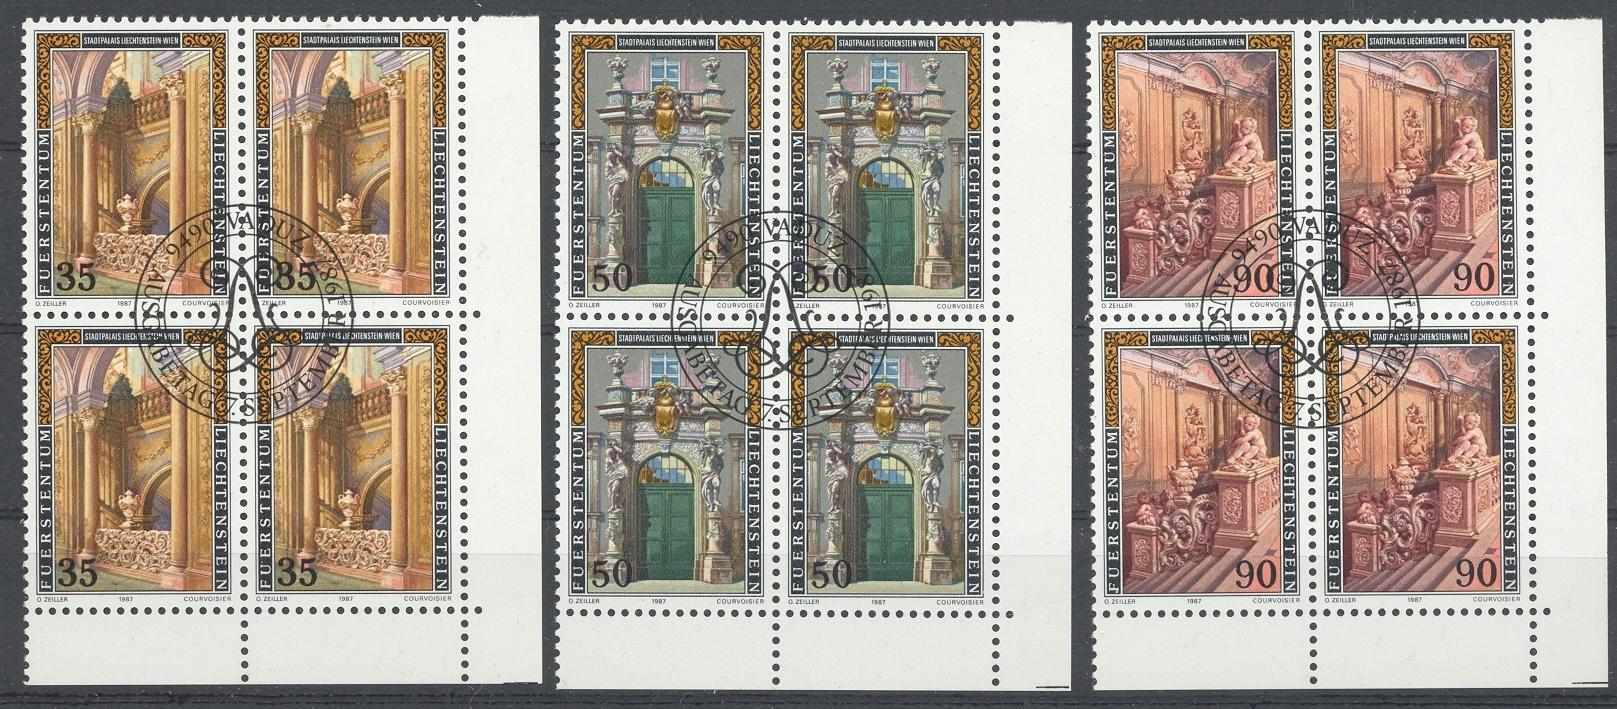 Stamps with Palace from Liechtenstein (image for product #032090)